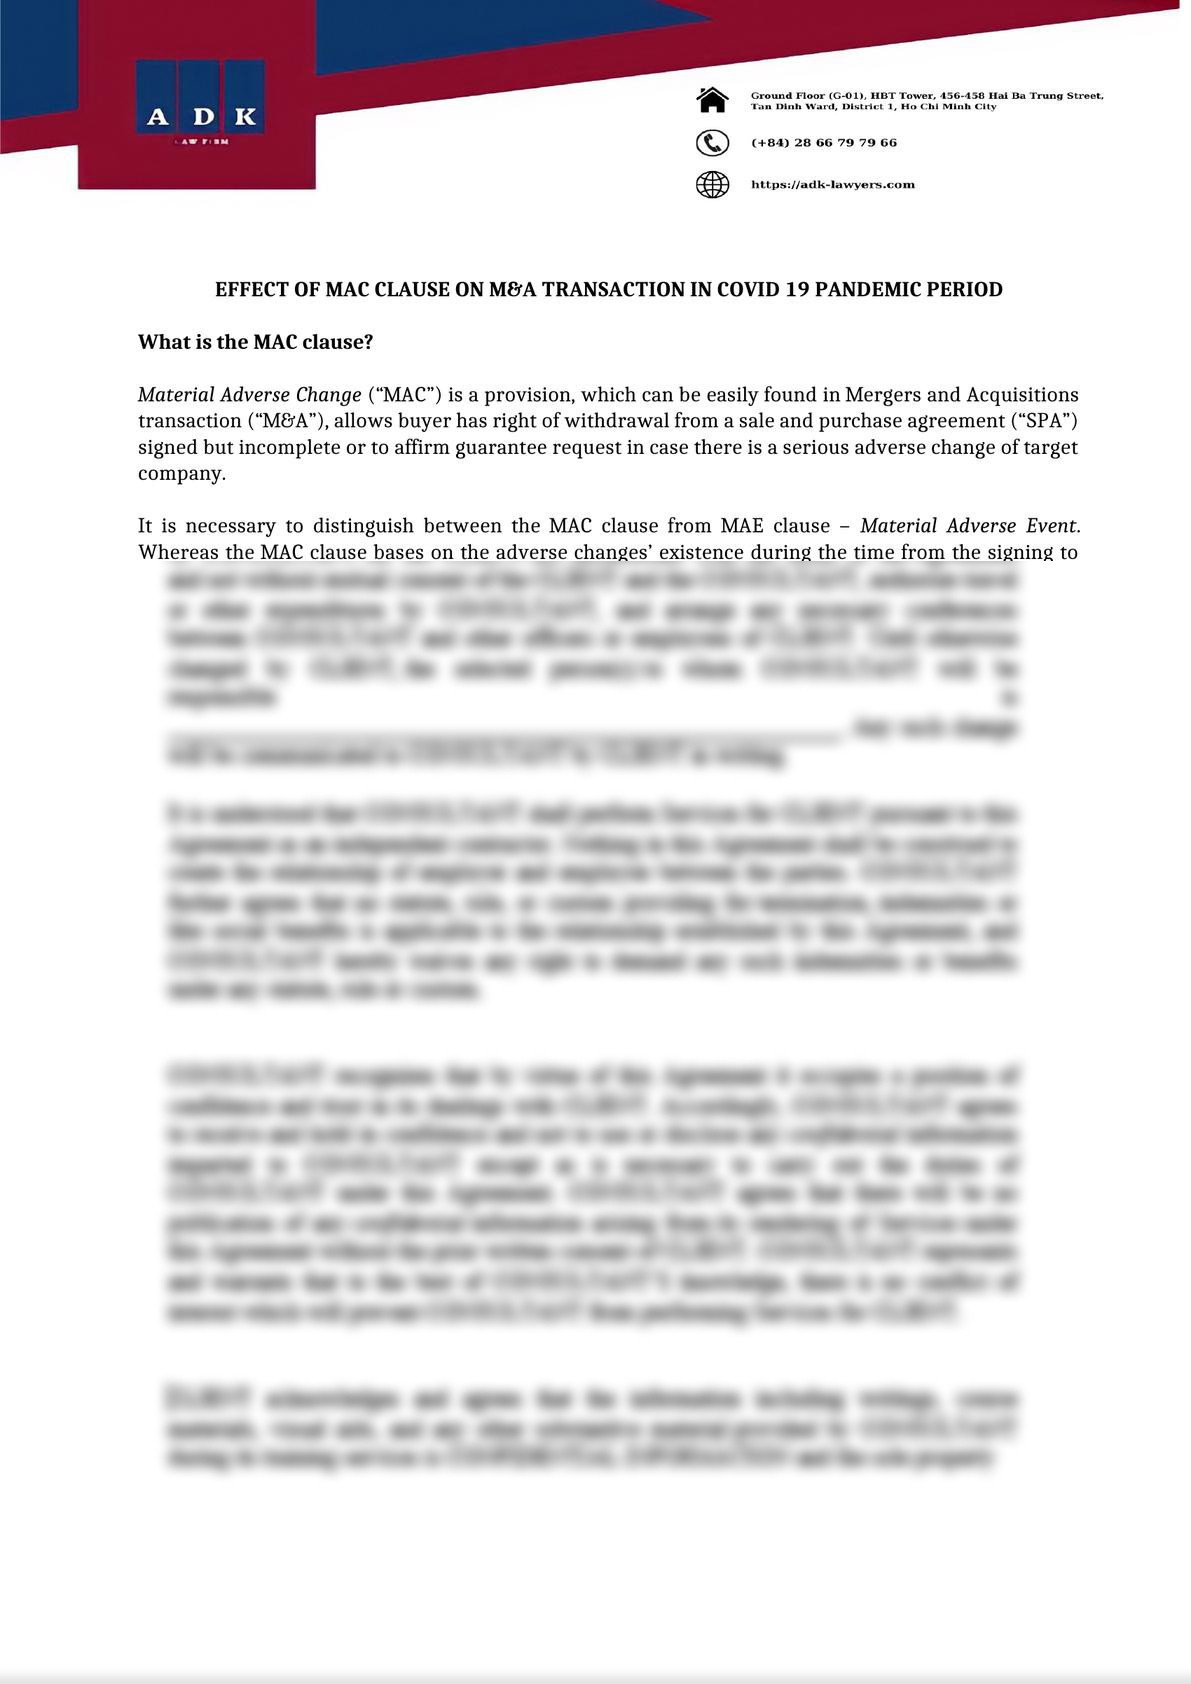 MAC CLAUSE ON M&A TRANSACTION IN COVID 19 PANDEMIC PERIOD-0